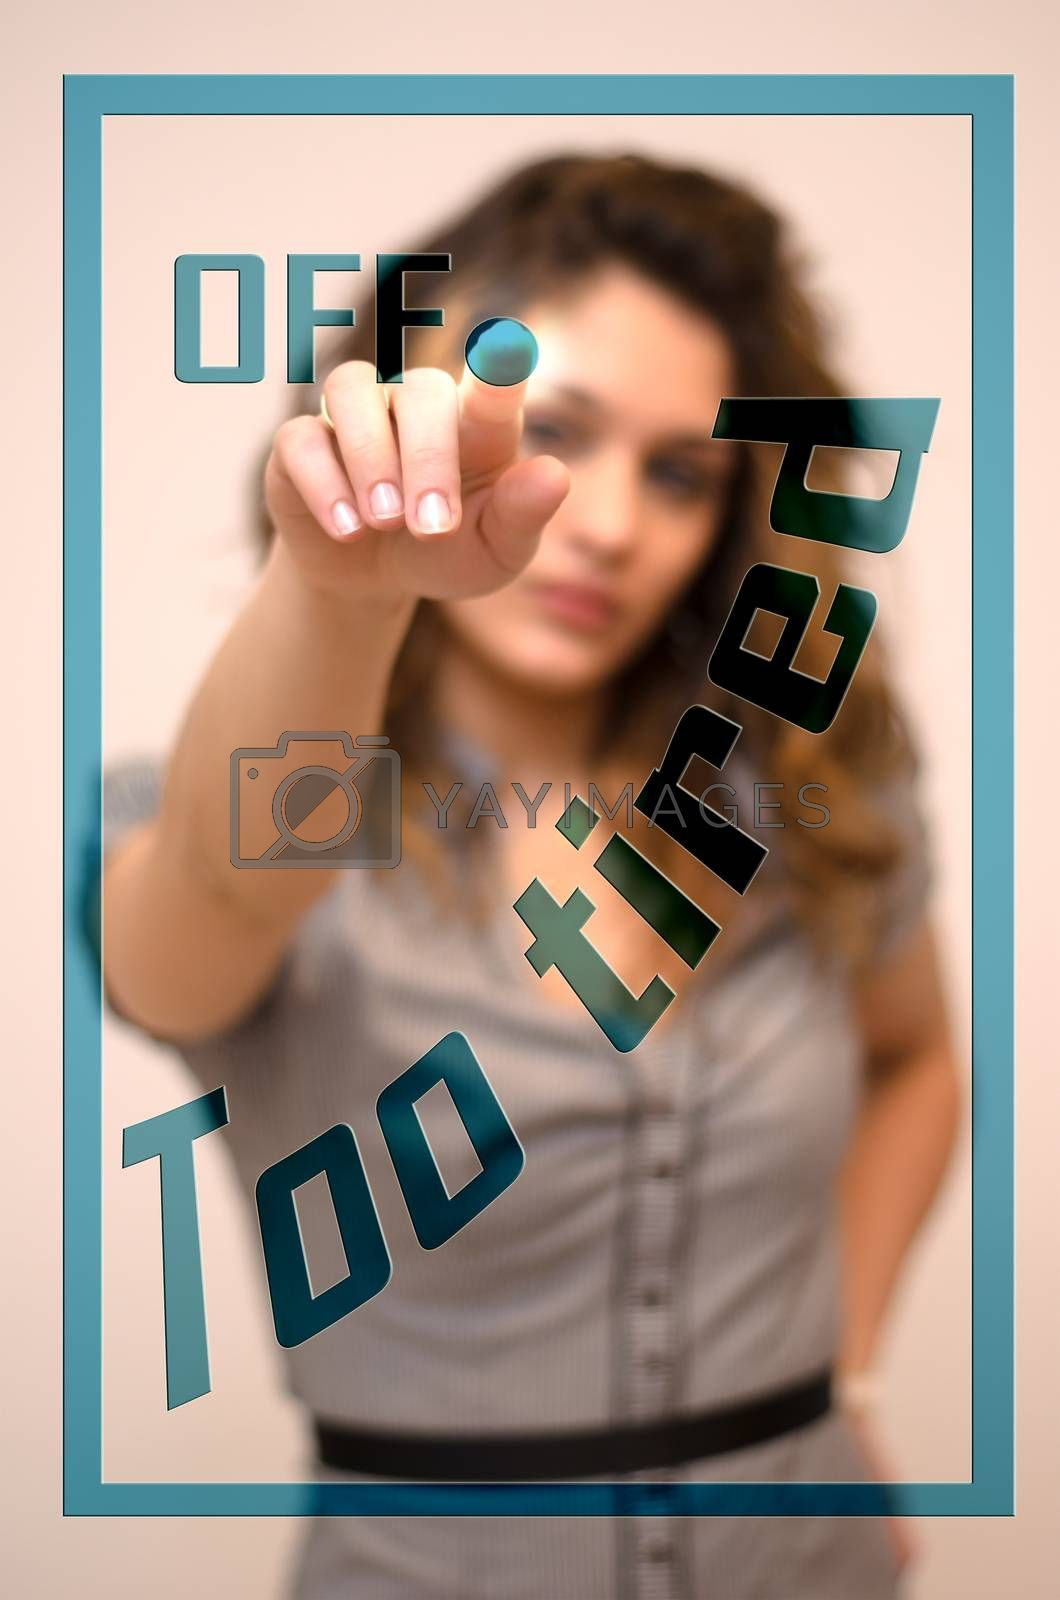 young woman turning off Too tired on digital panel